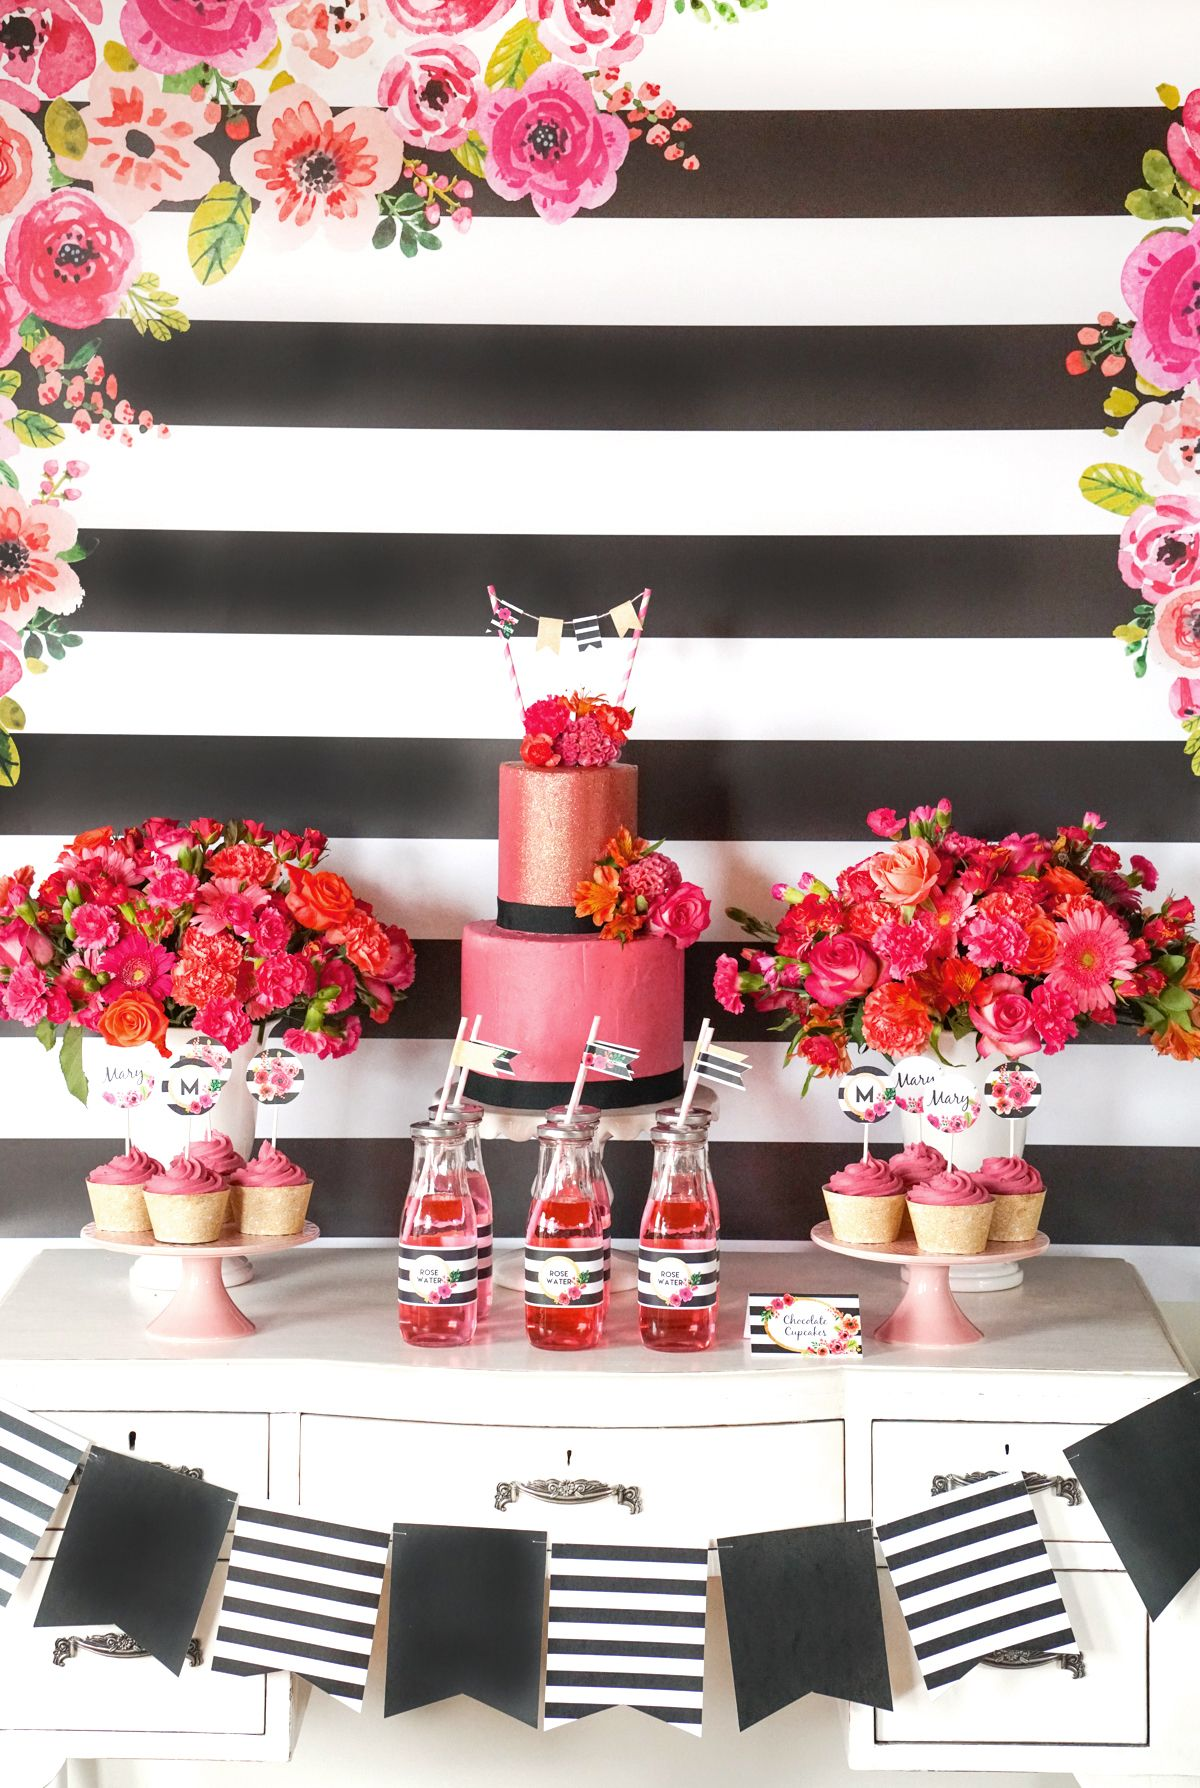 Black and White Striped Floral Party Set Up 30th 40th 50th